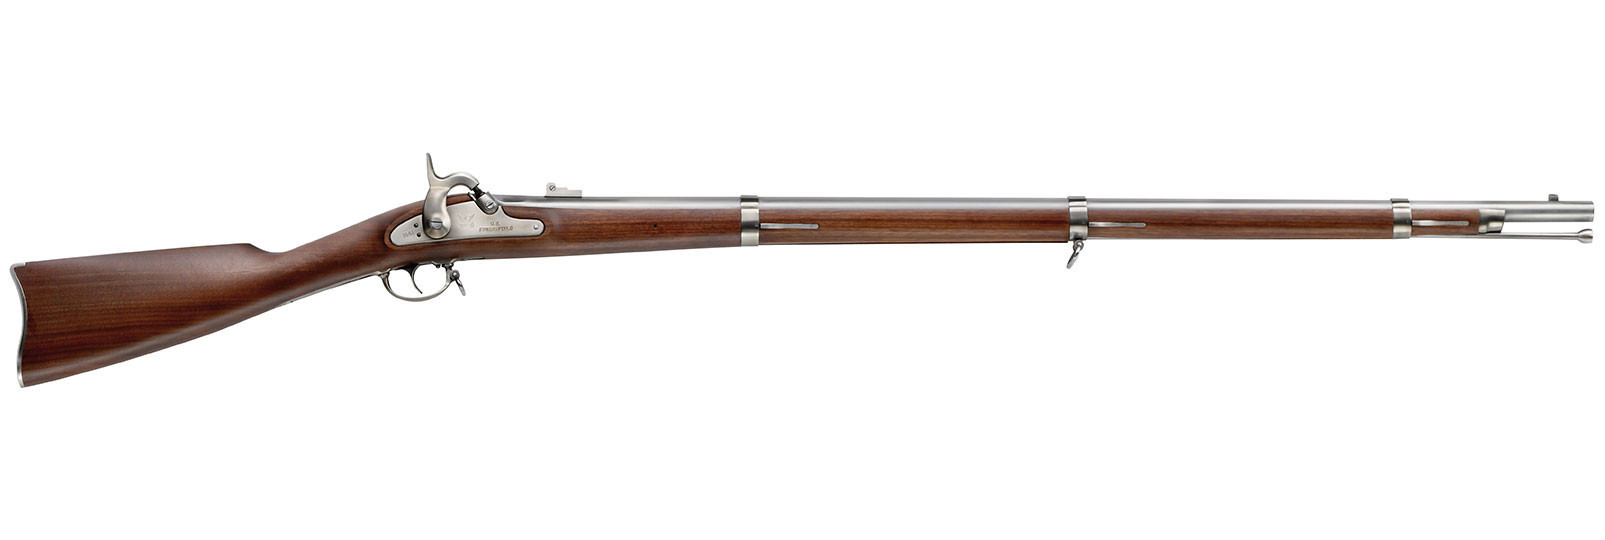 Springfield 1861 US Percussion Rifle